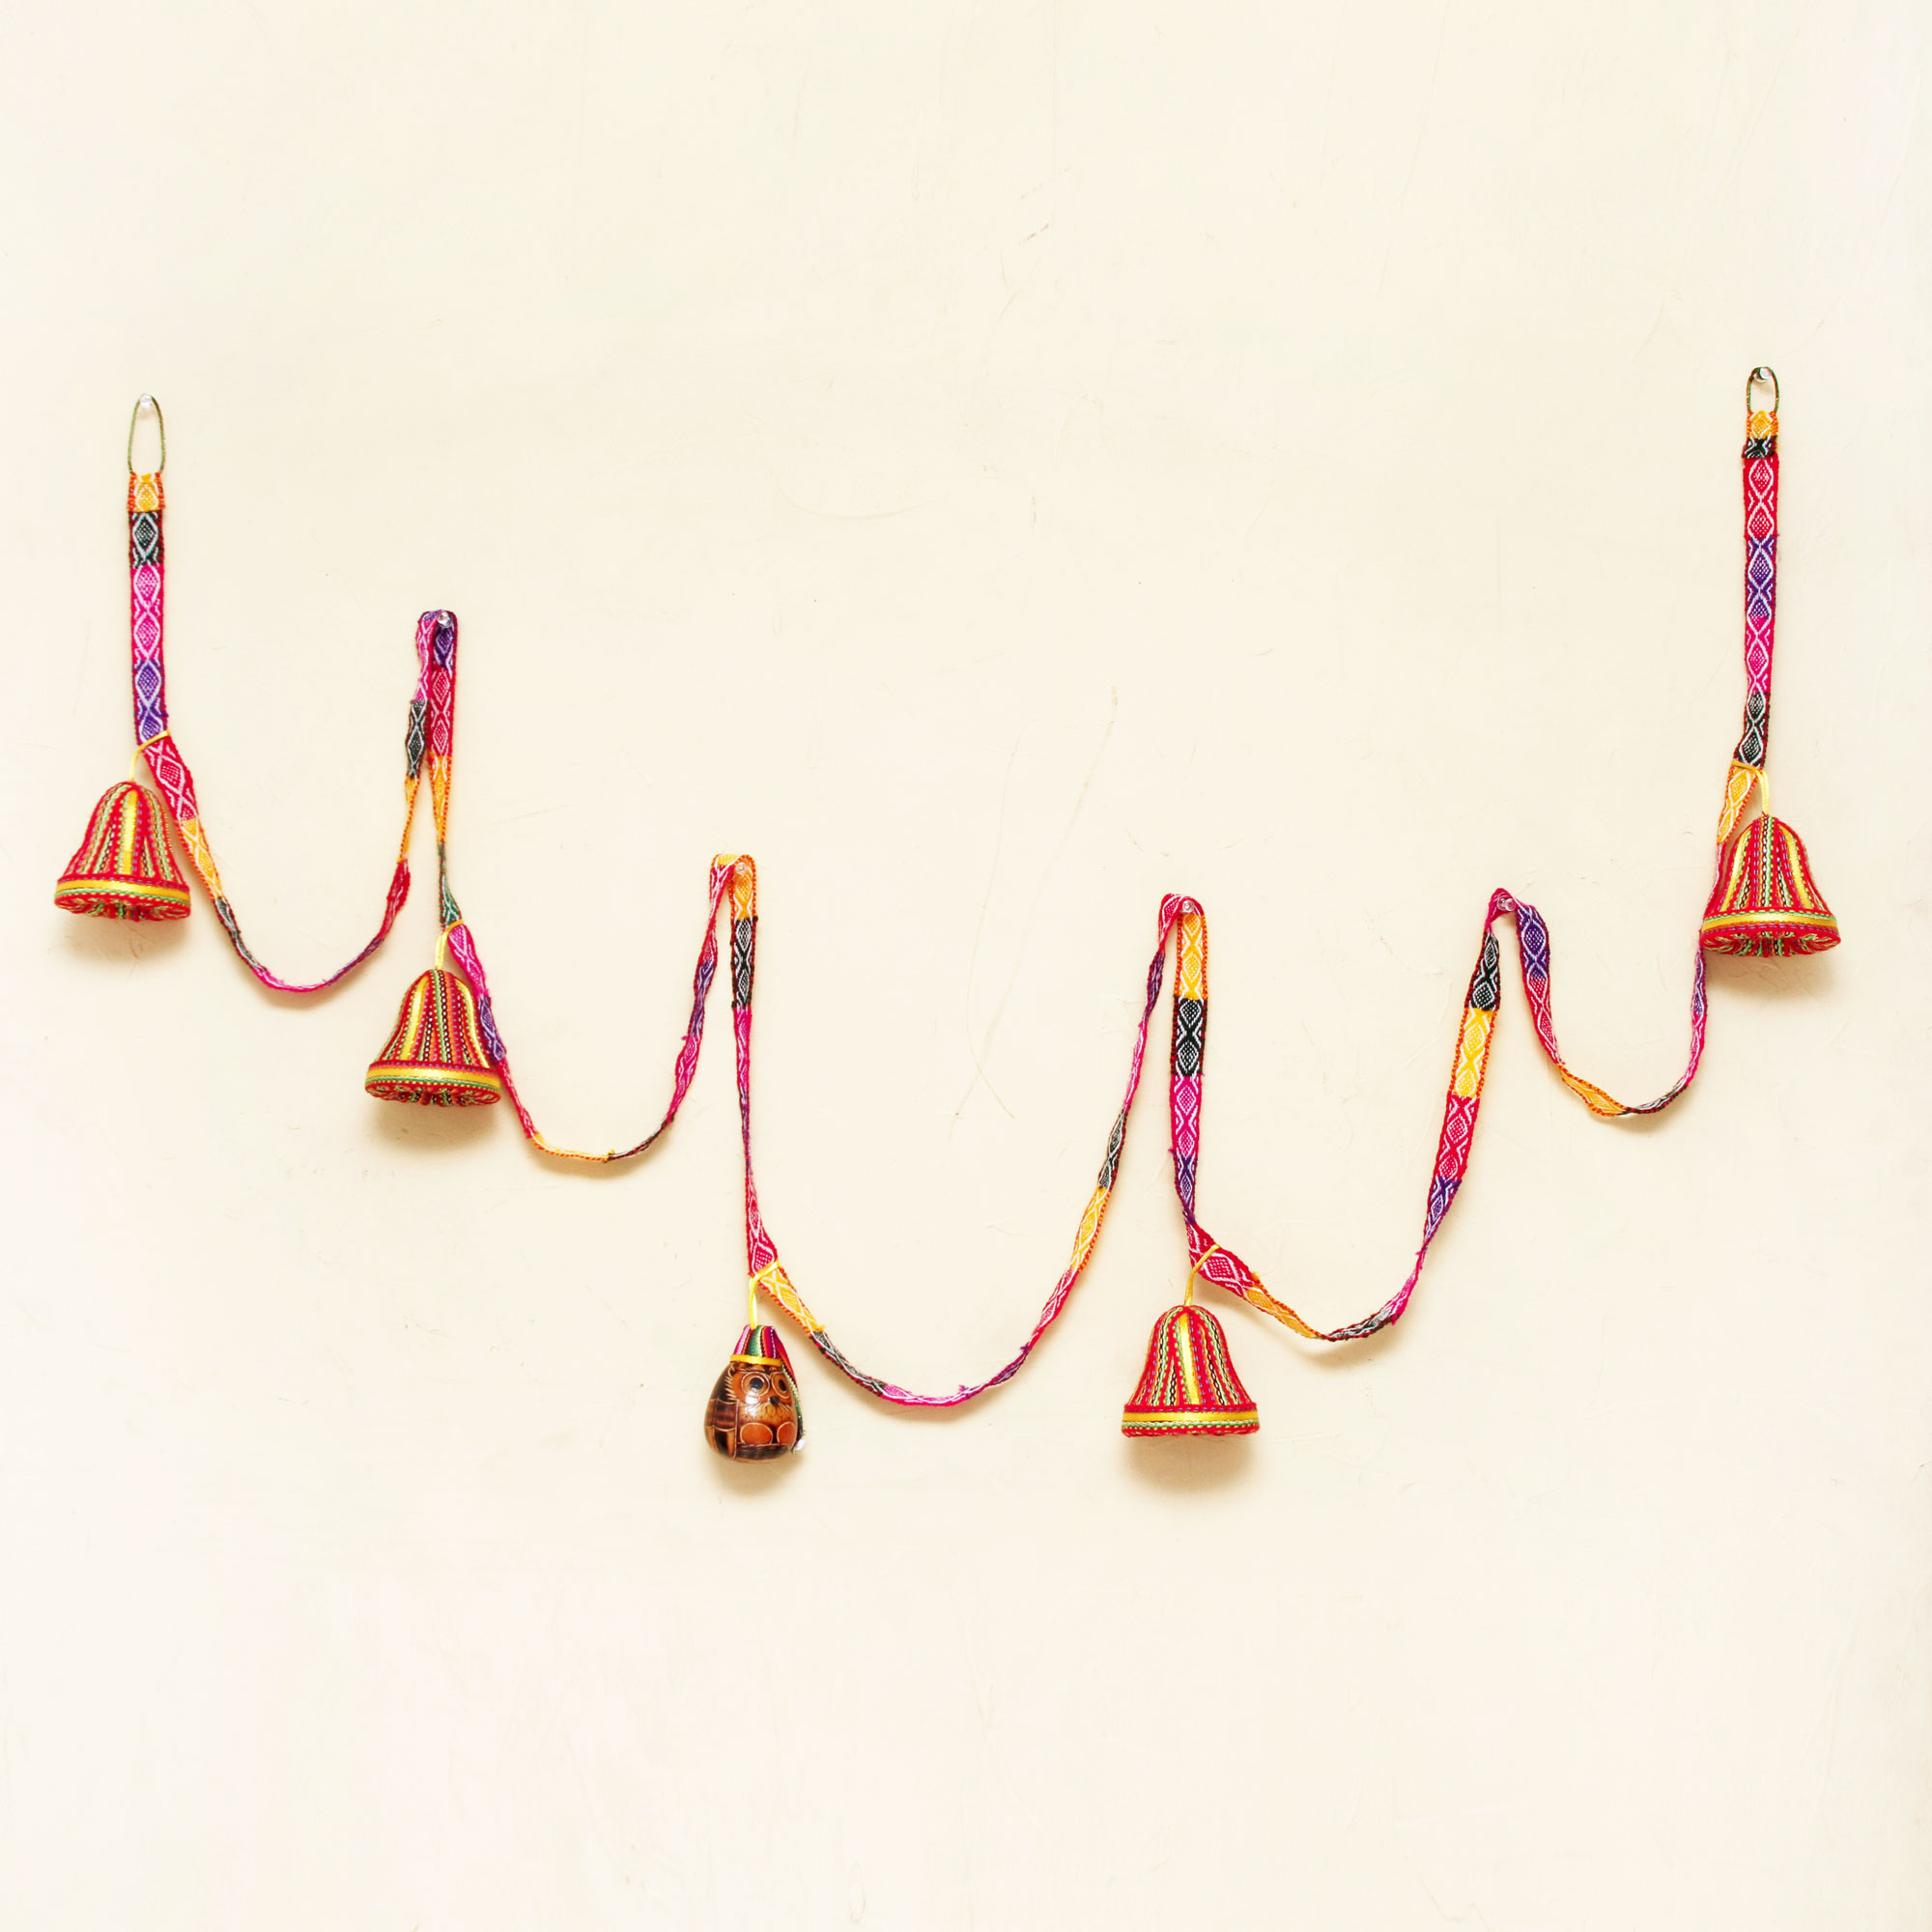 Mate gourd and cotton blend ornaments, 'Bell Garland' Get Your Home Ready for the Holidays